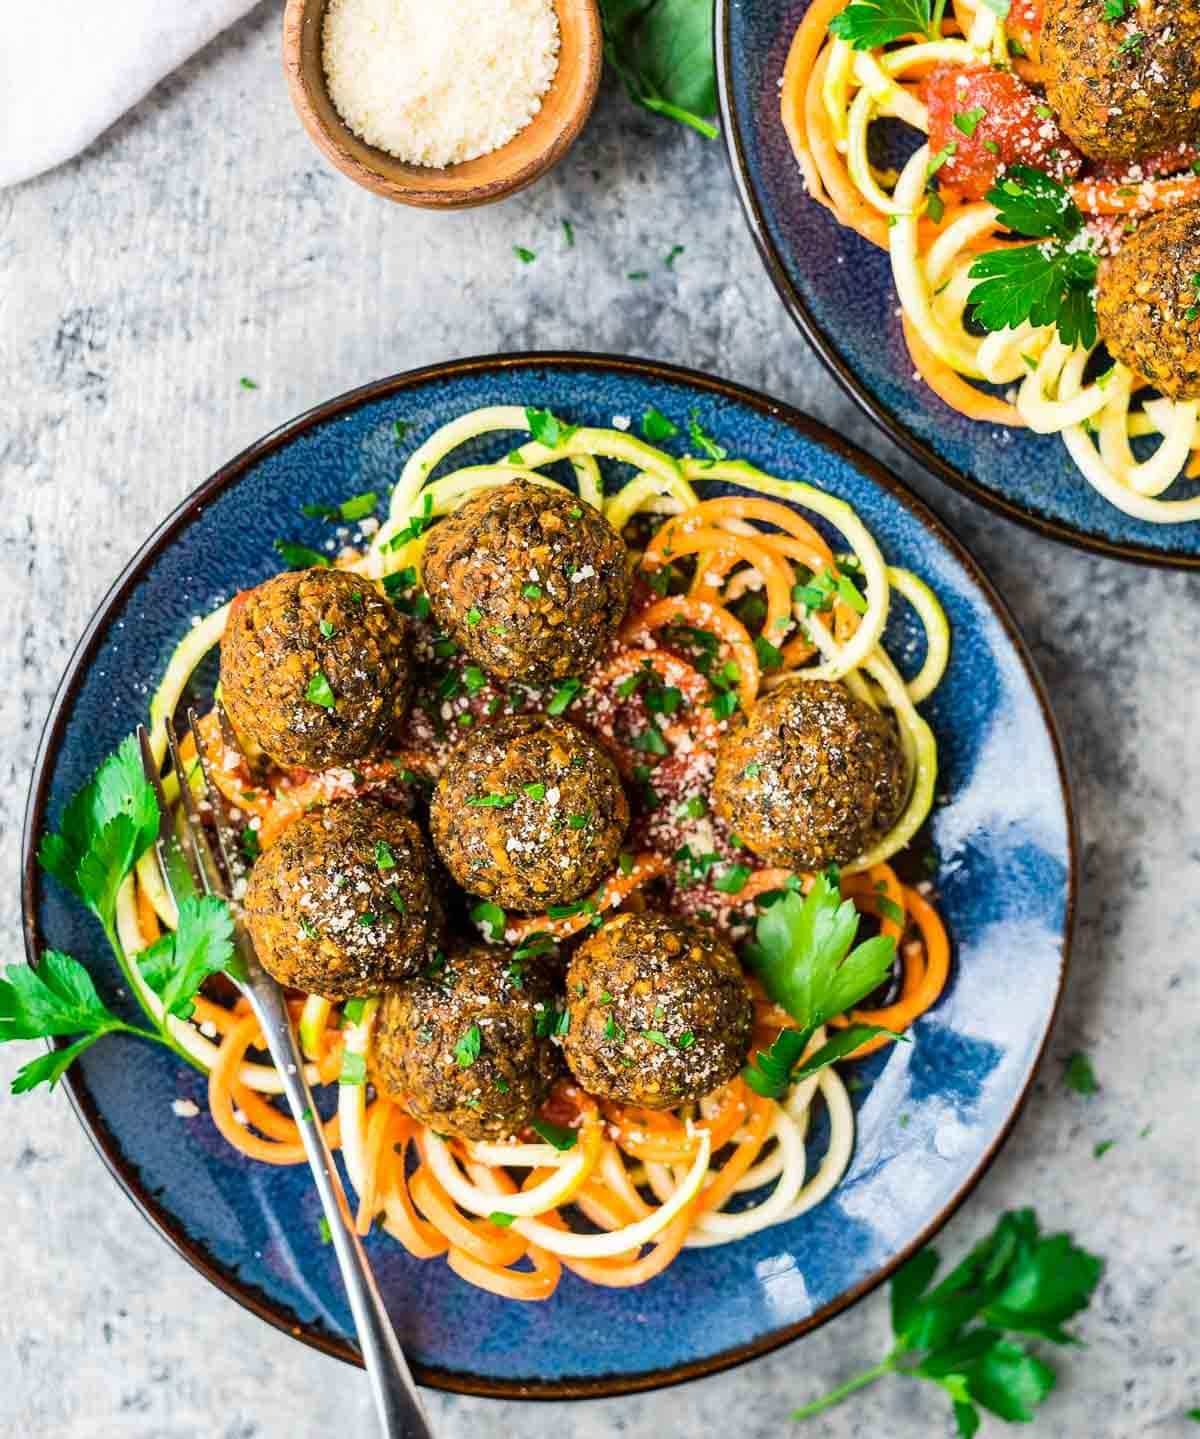 Baked Lentil Meatballs – Simple, healthy, delicious! A filling vegetarian recipe that's perfect for meatless meals Recipe at wellplated.com   @wellplated